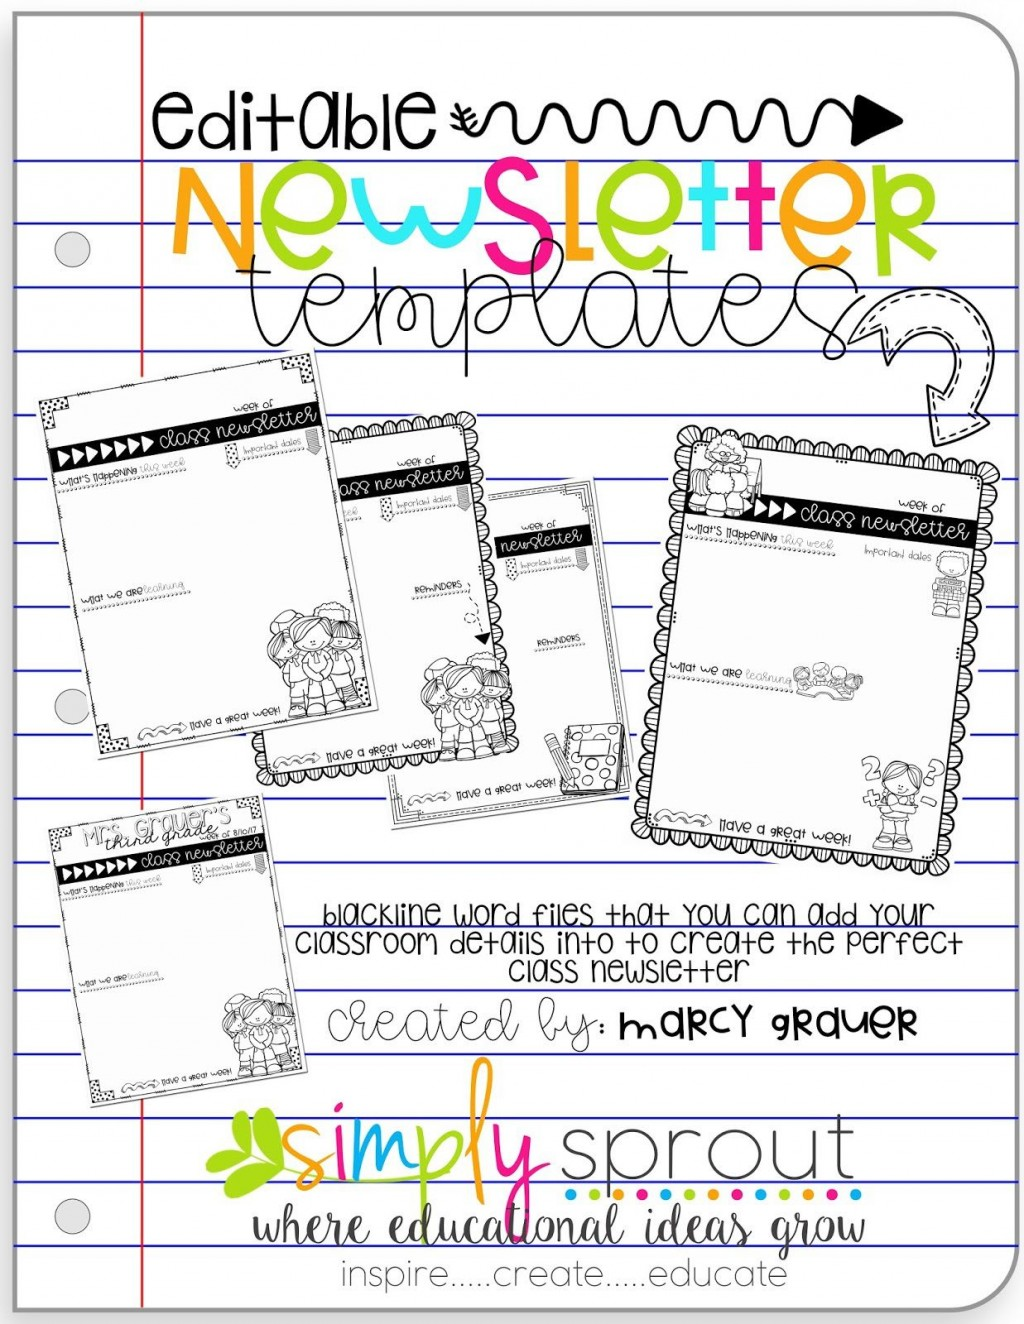 009 Astounding School Newsletter Template Free Image  Word Download CounselorLarge